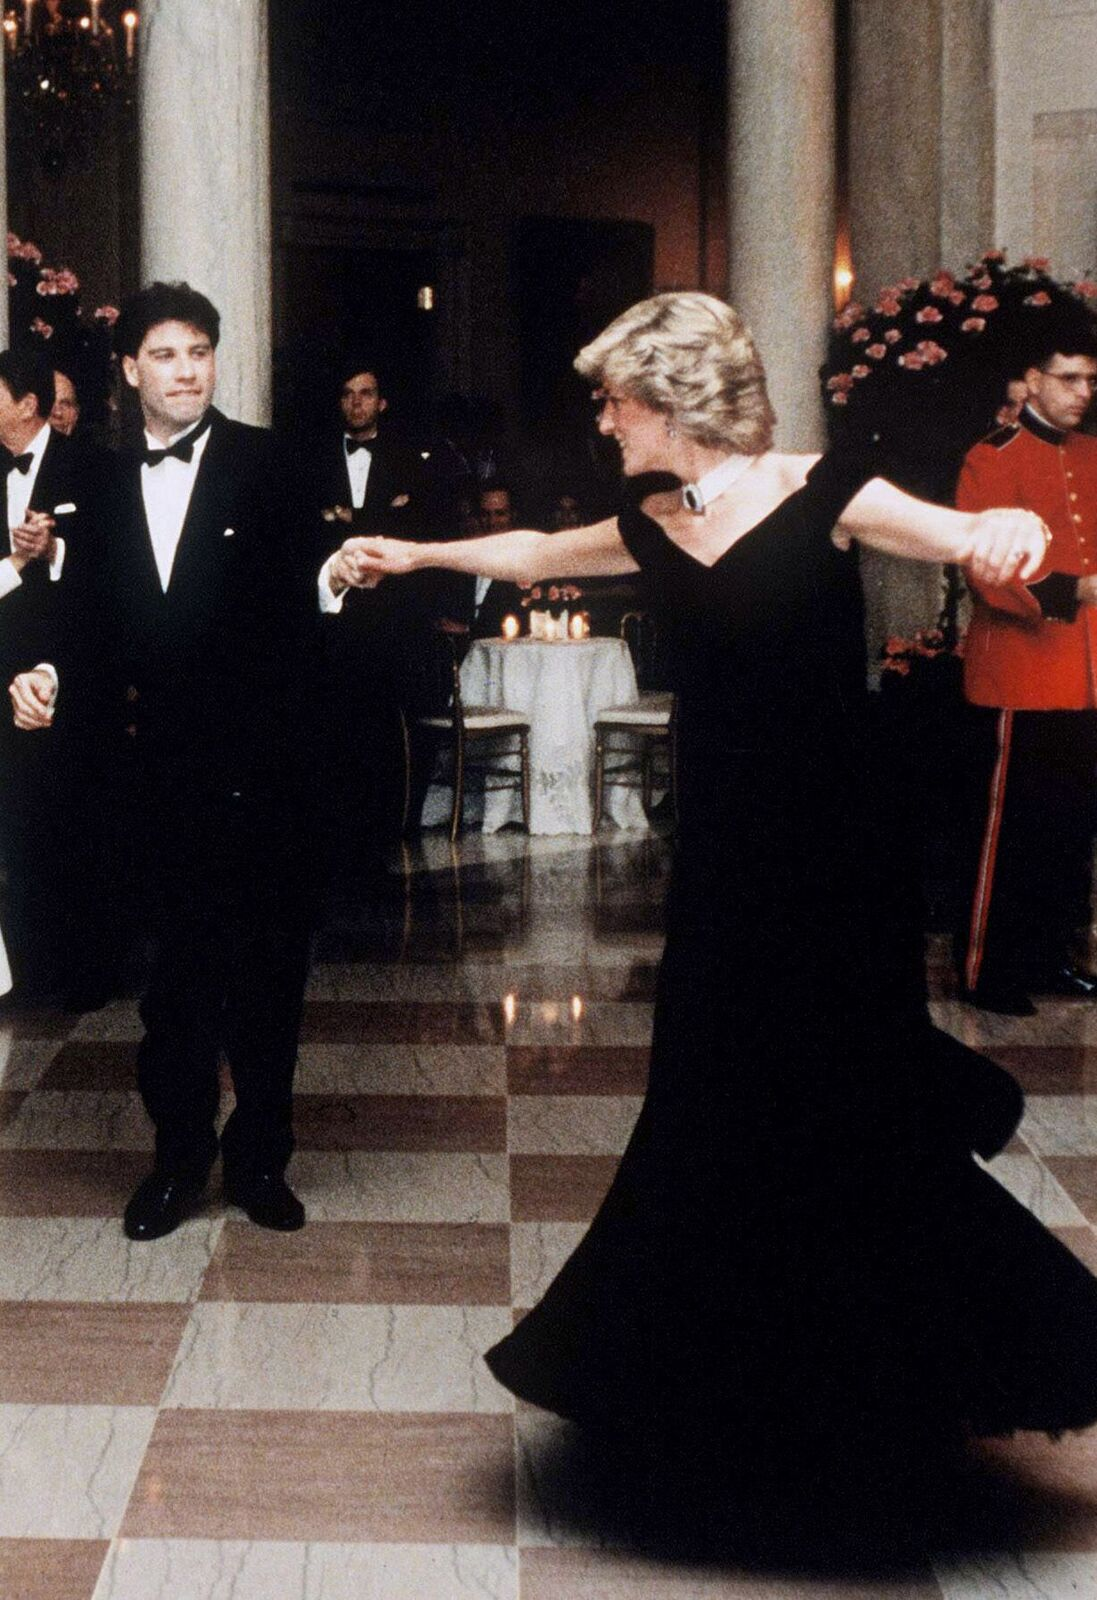 Diana, Princess of Wales, dances with movie star John Travolta at the White House in 1985 | Source: Getty Images